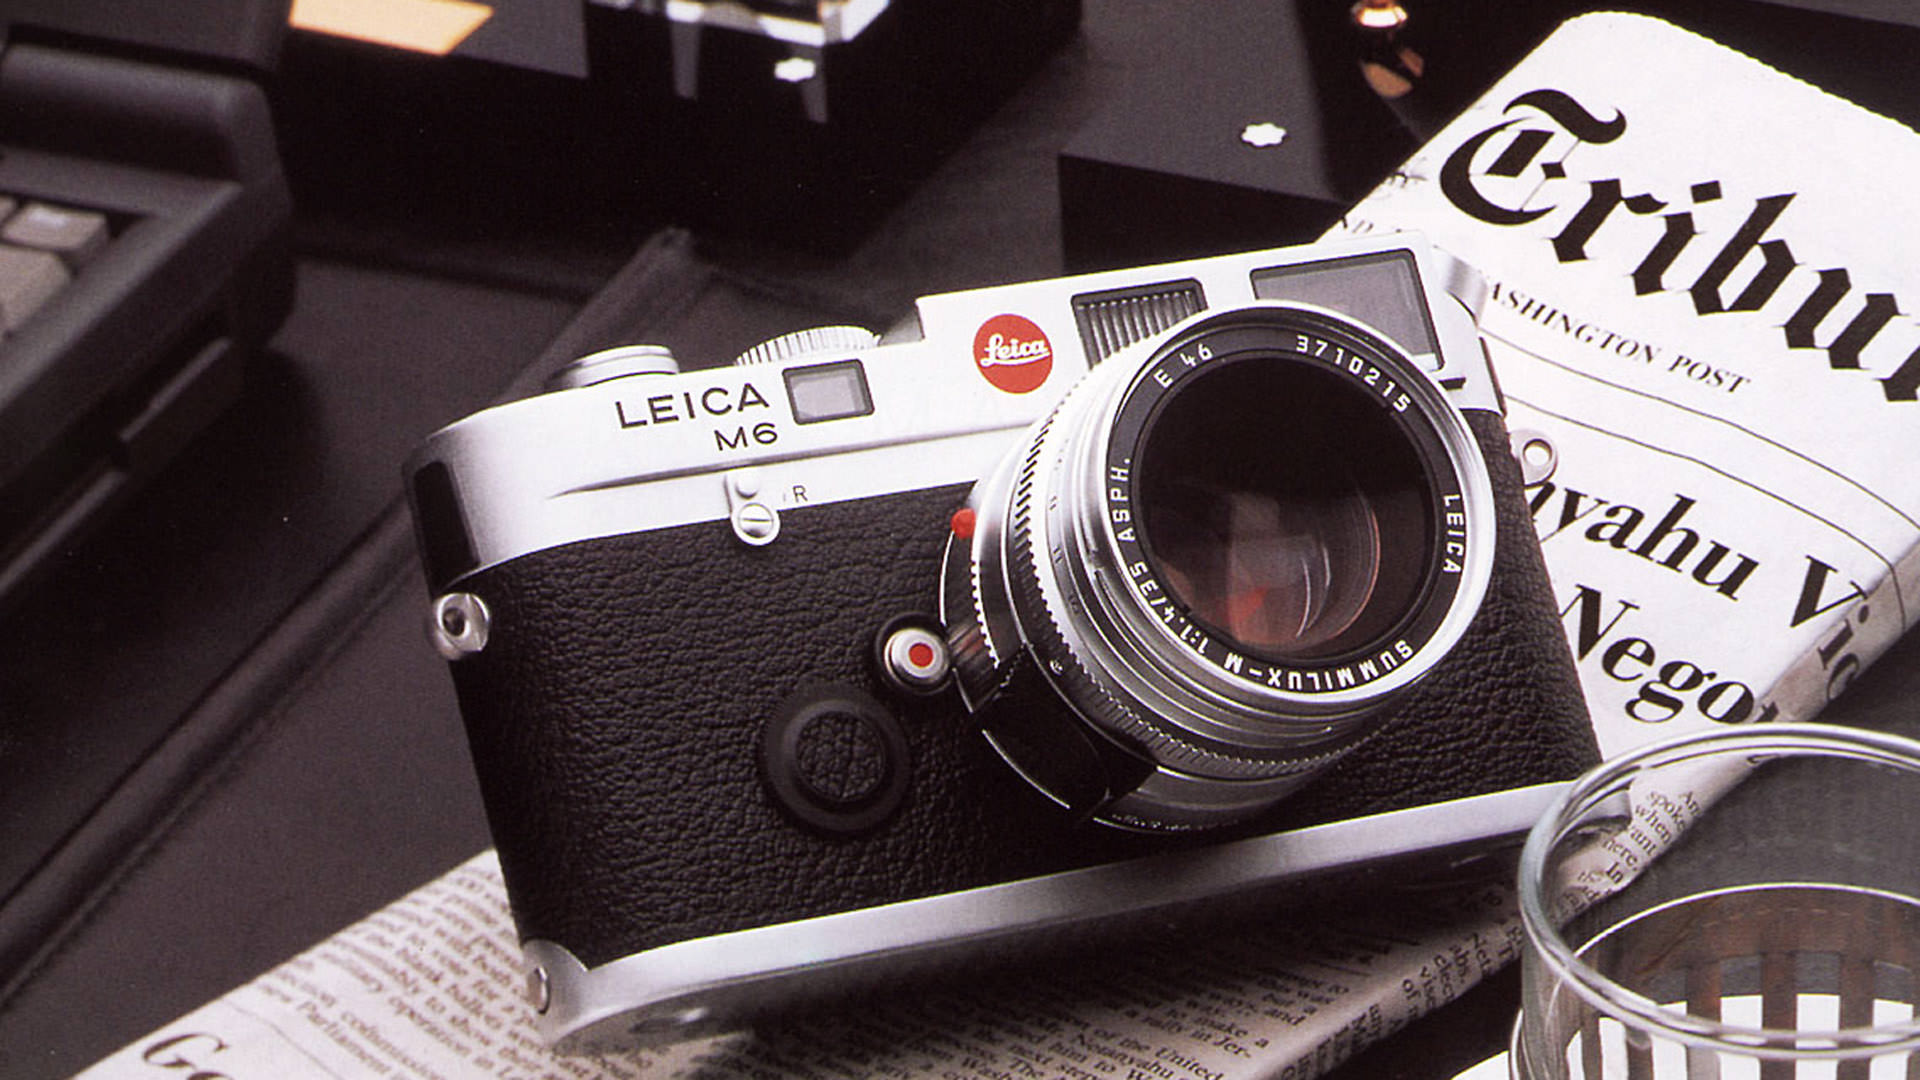 10 iconic photographs taken on Leica cameras | The Gentlemans ...